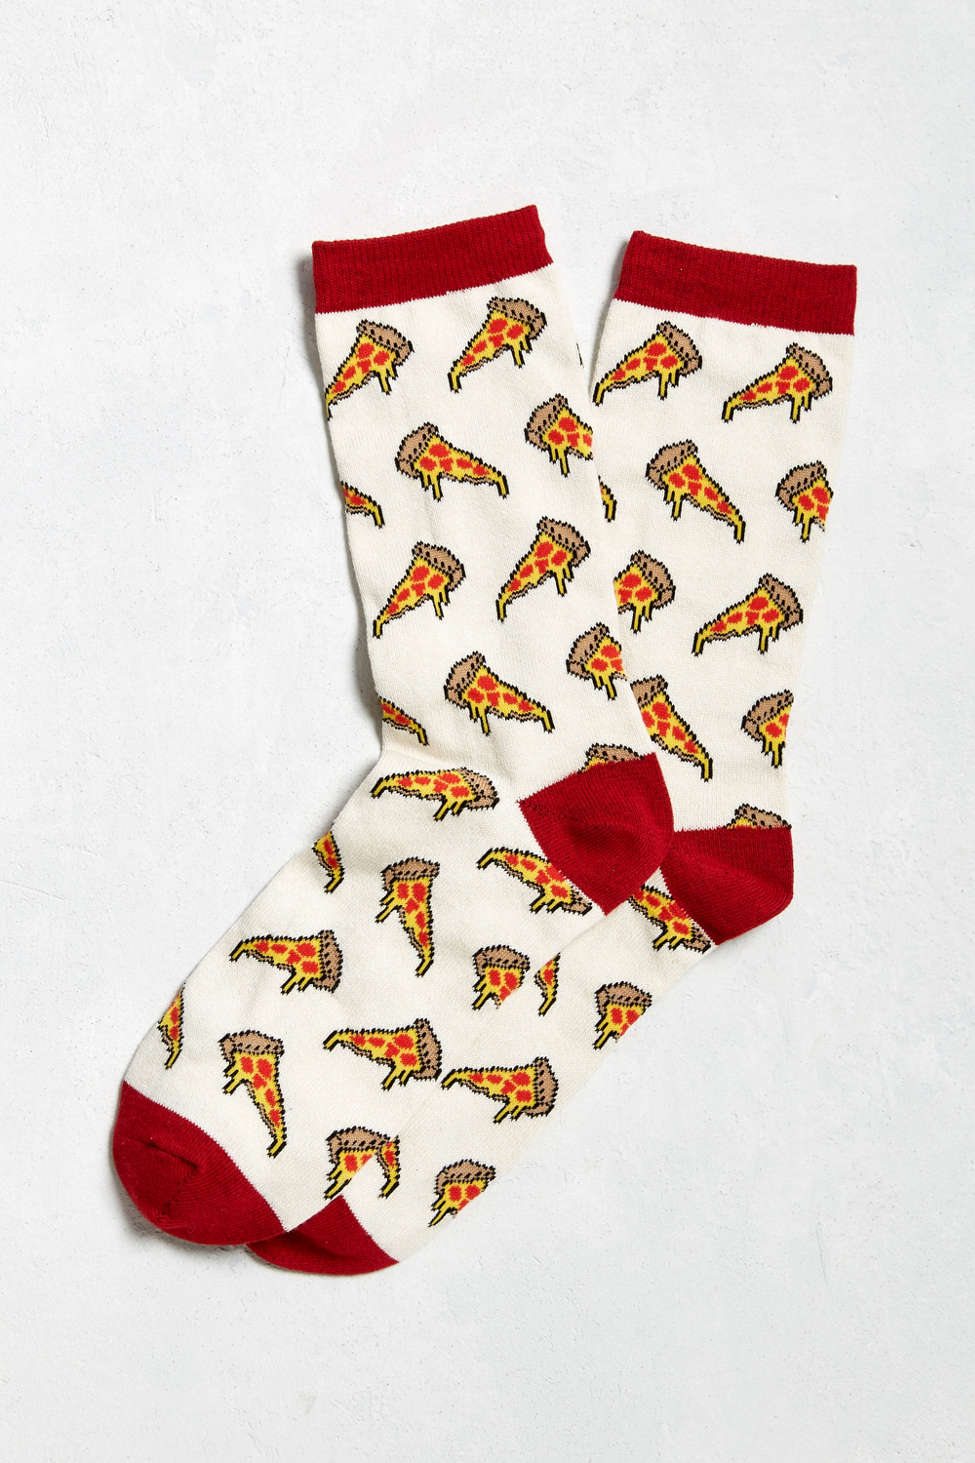 Slide View: 1: Pizza Sock